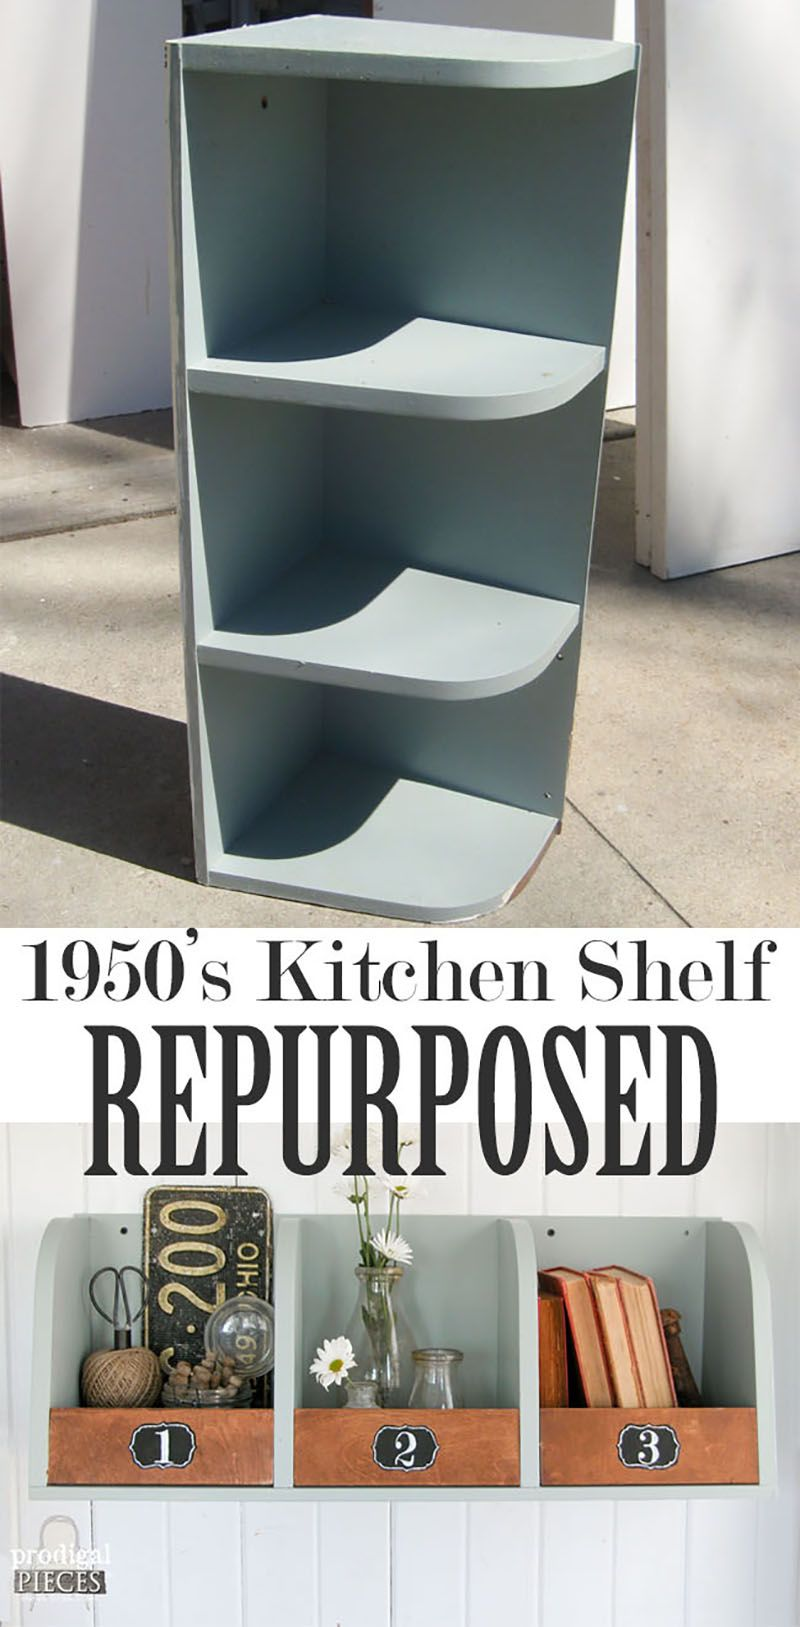 Imaginative and Original Farmhouse Thrift Store Makeovers - The Cottage Market